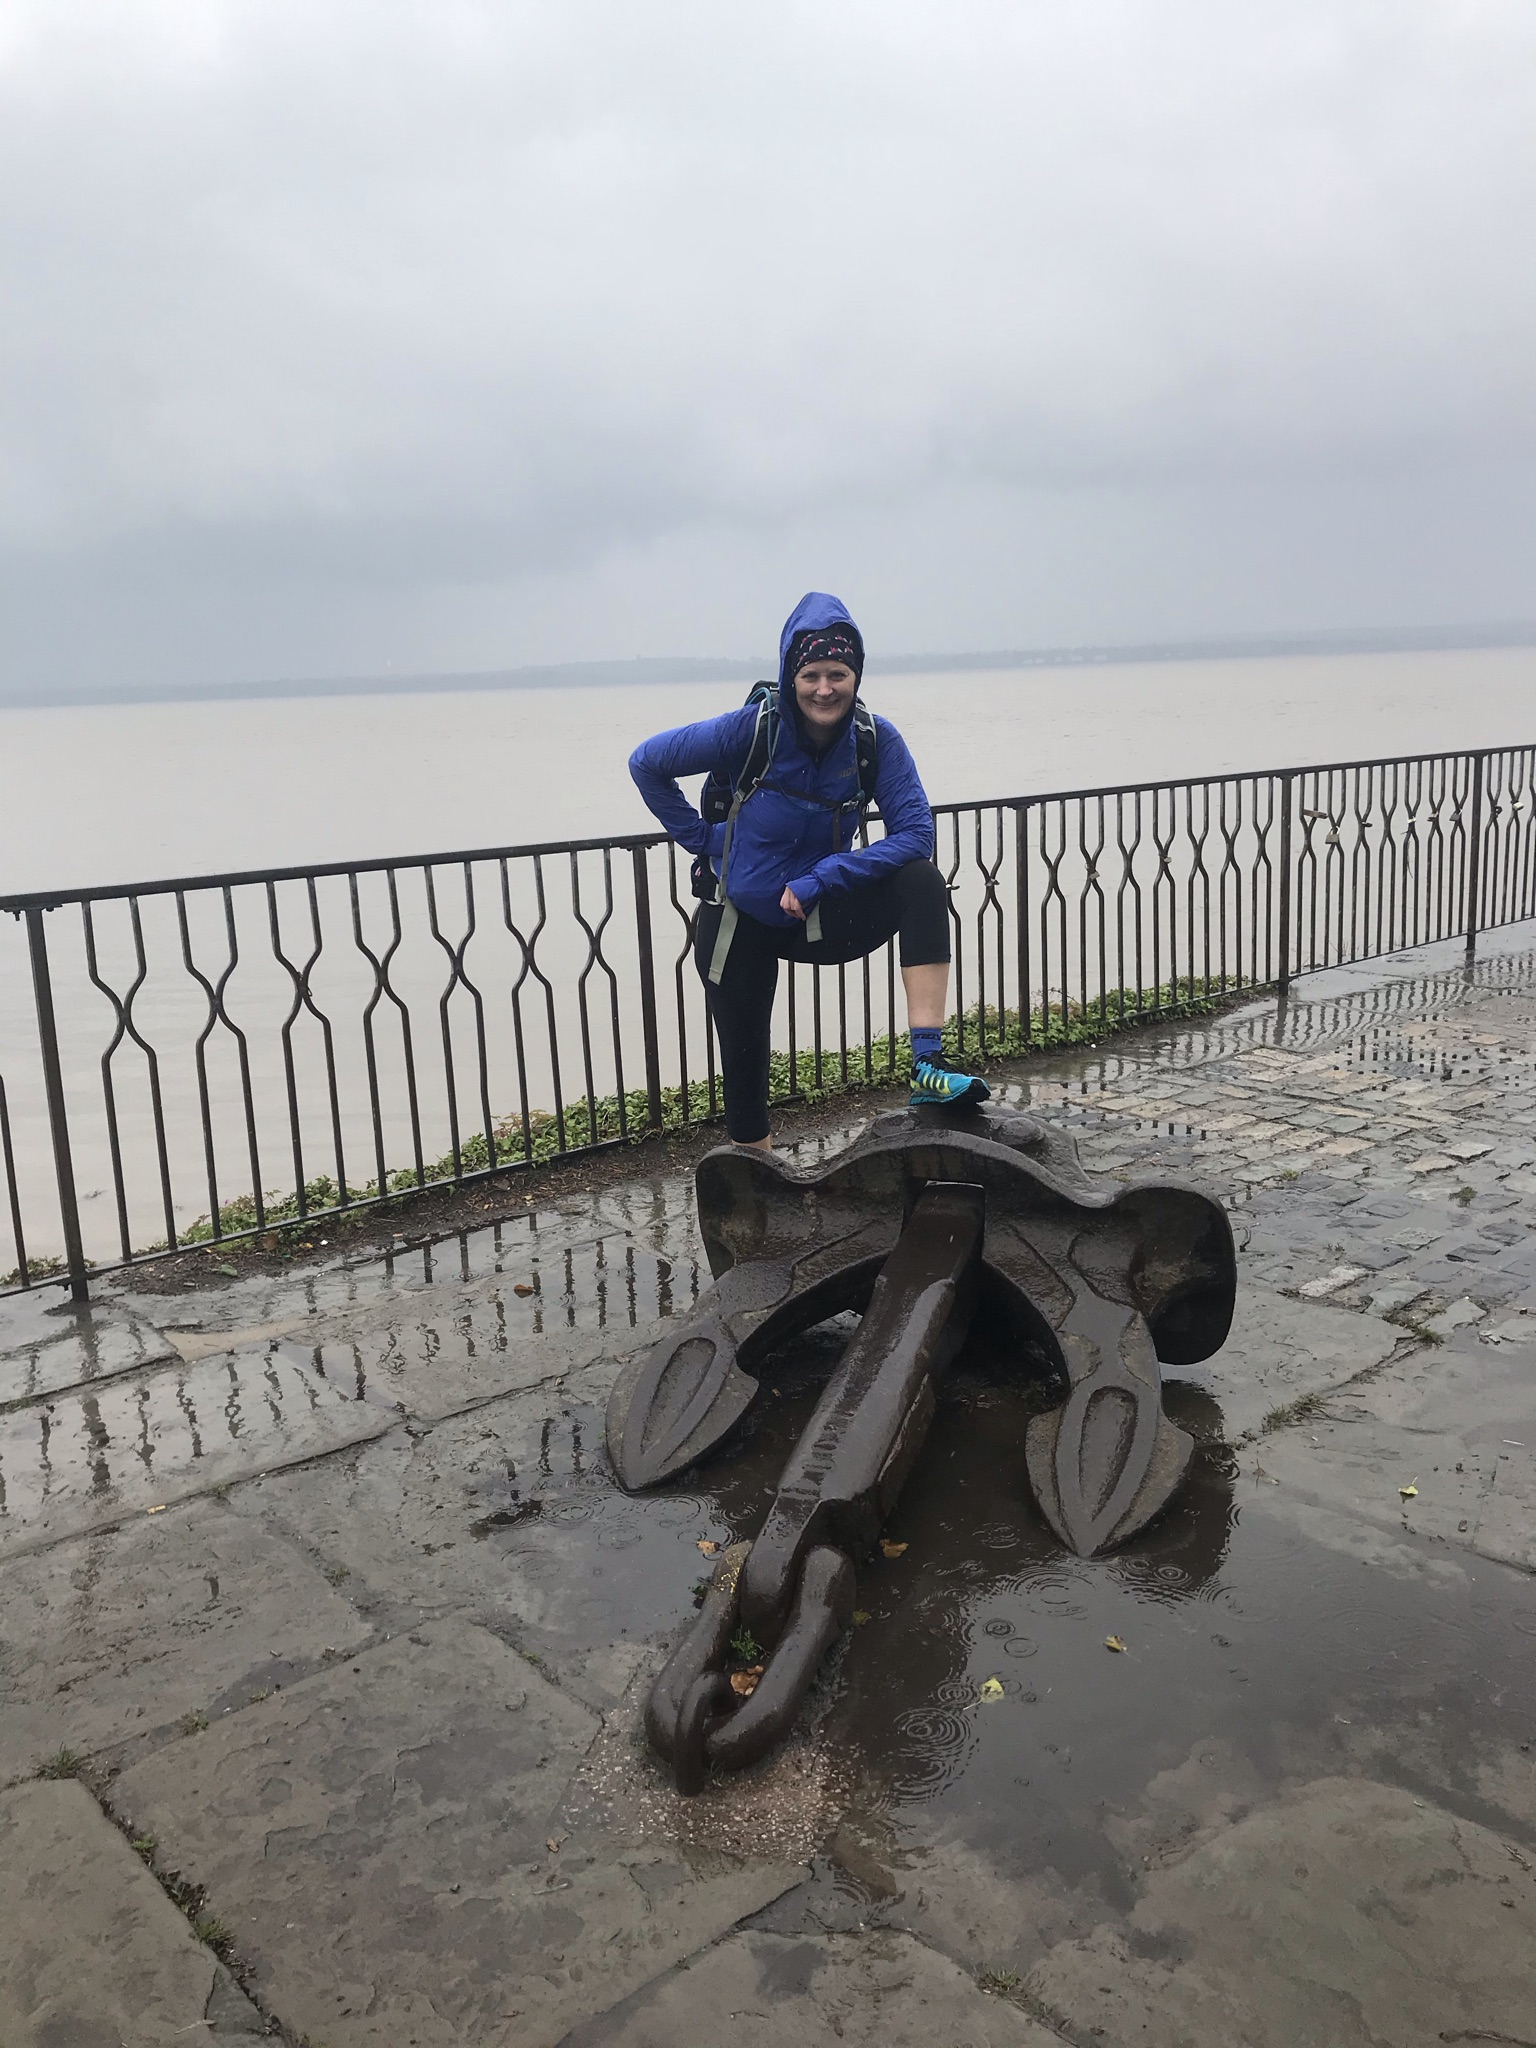 Sarah stands with one foot on an anchor. Behind her the sky is grey and rainy